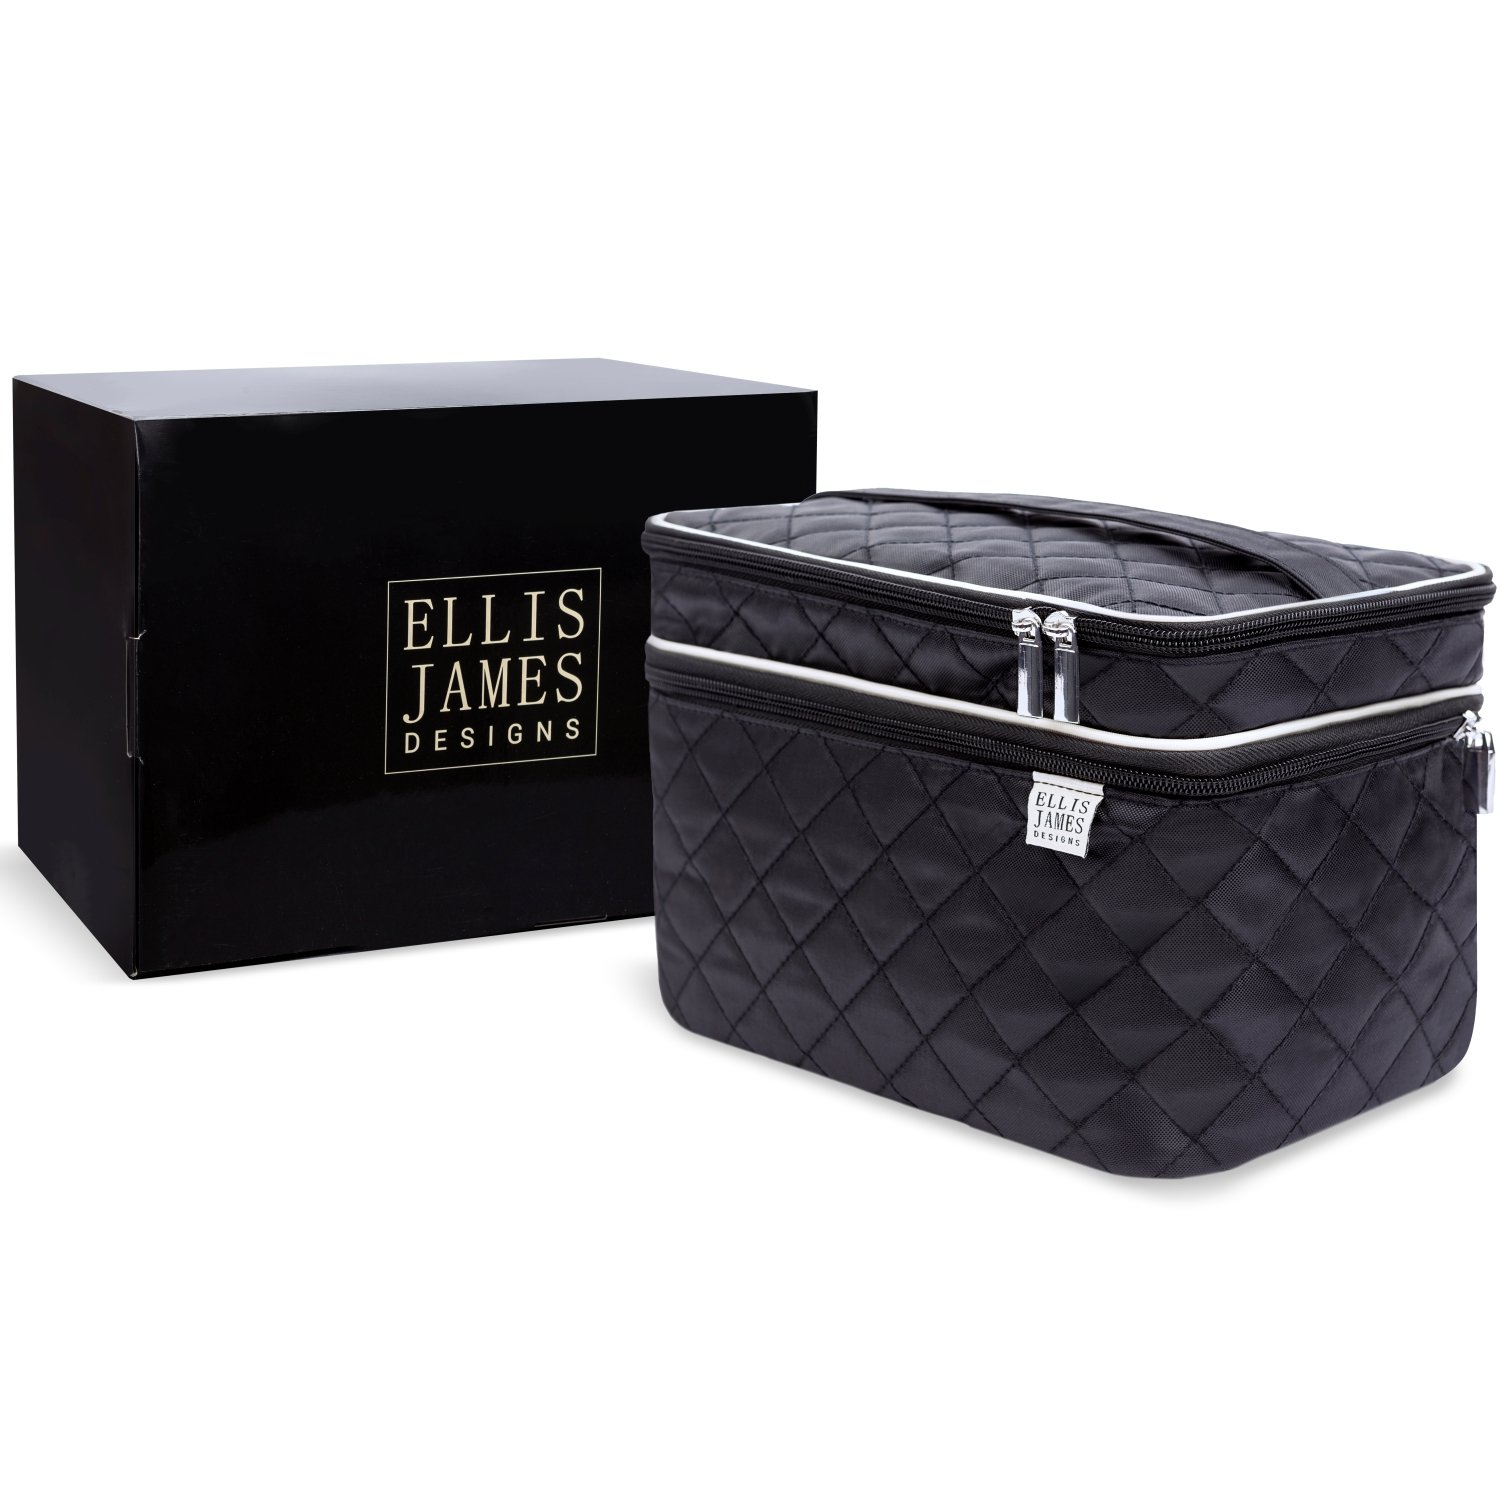 Ellis James Designs Large Travel Makeup Organizer Bag Make Up Train Case Professional - Black - Big Portable Cosmetic Bags and Cases Gifts for Women, Cute Beauty, Toiletry & Cosmetics Brush Organizers